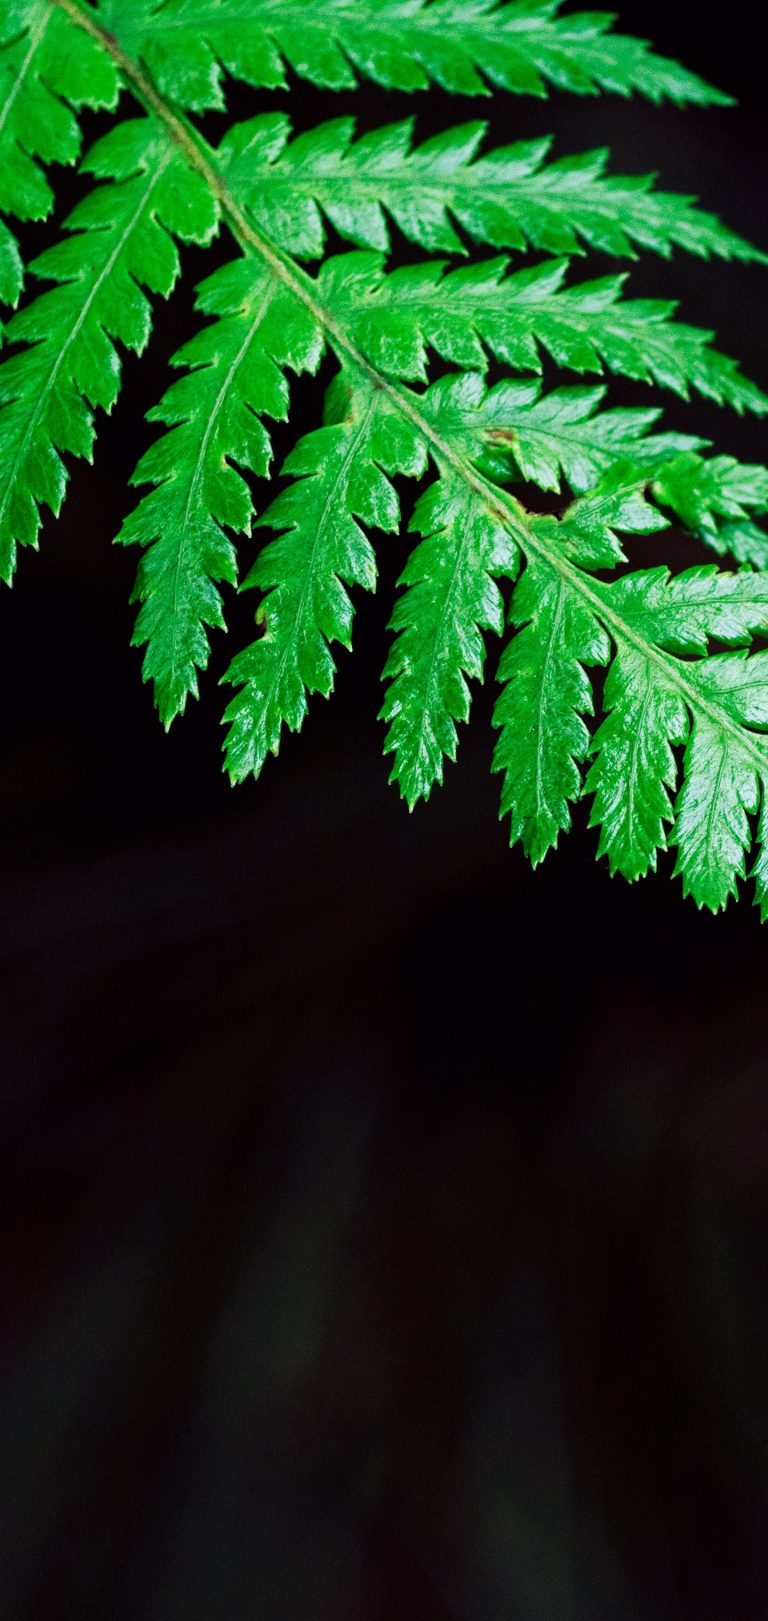 Fern Plant Leaf Wallpaper 1440x3040 768x1621